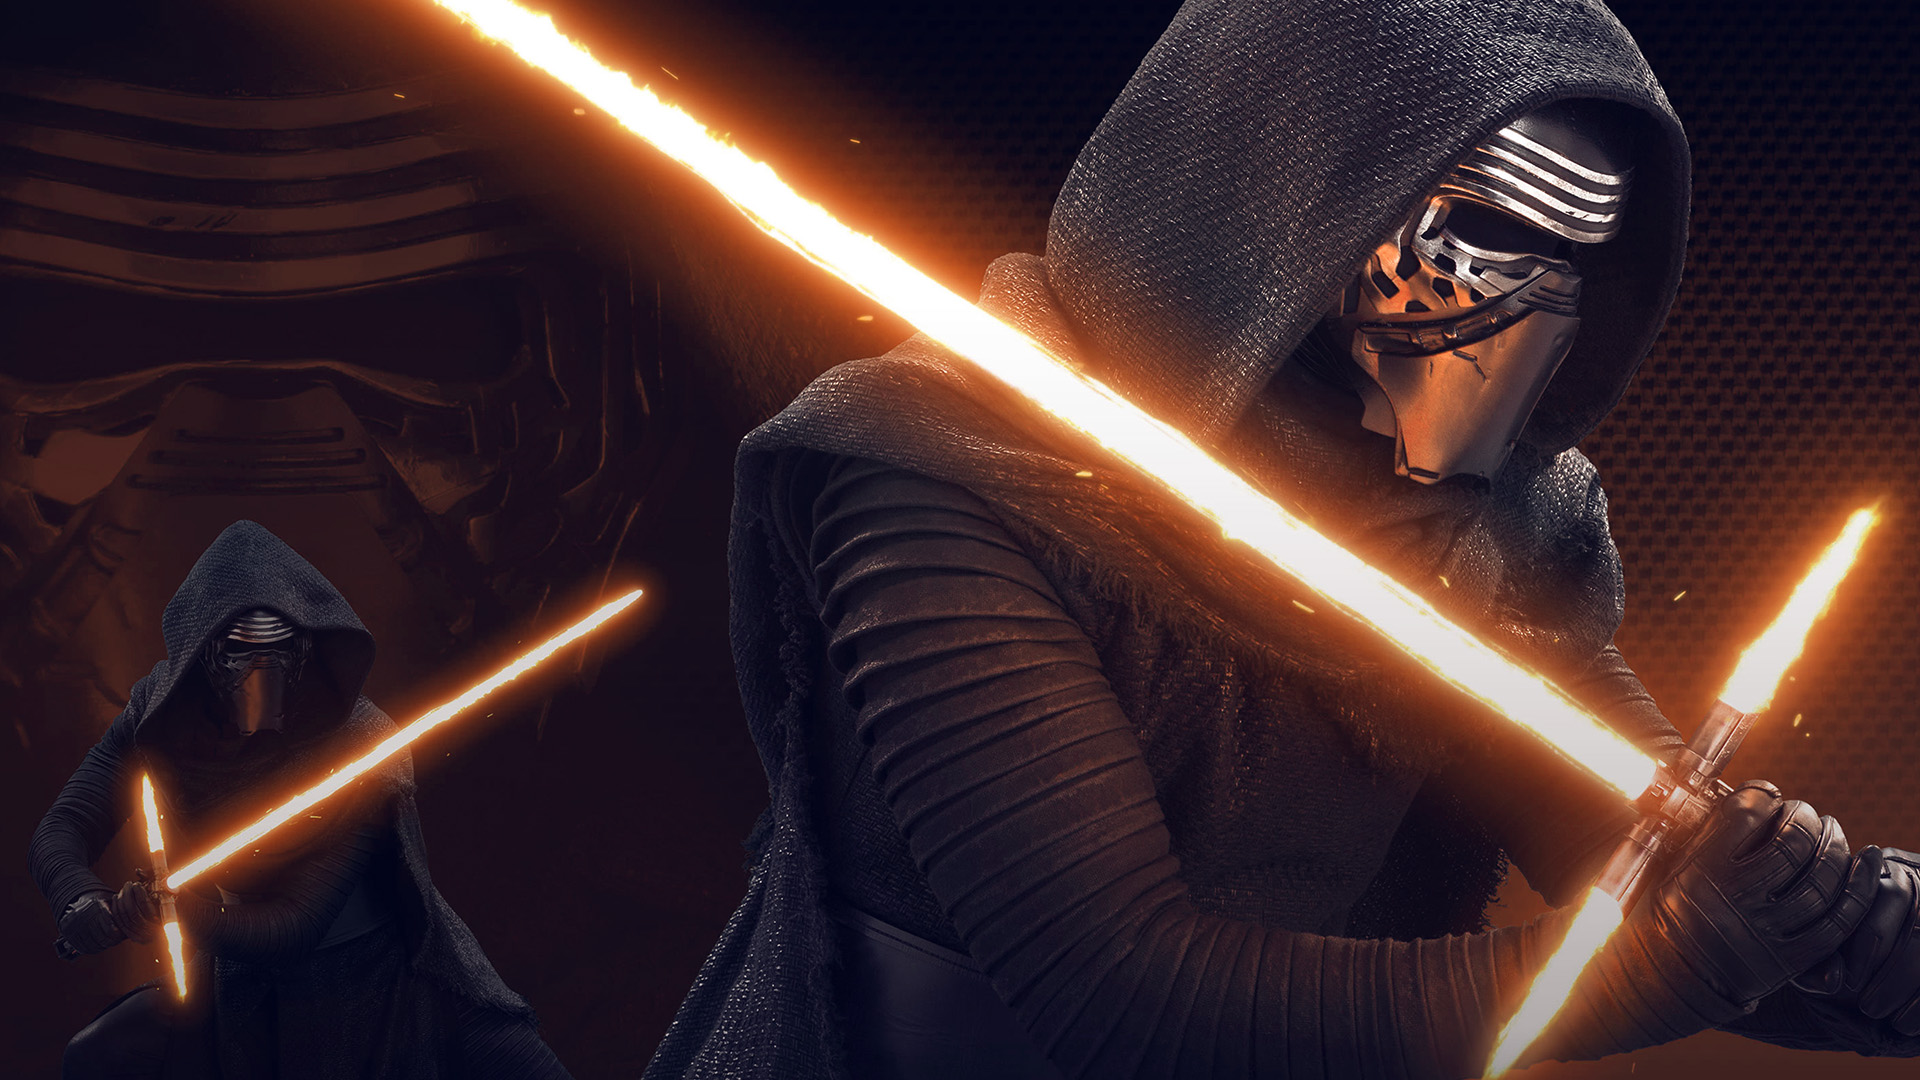 Cute Wallpapers For Macbook Pro At11 Starwars Kylo Ren Dark Orange Lightsaber Art